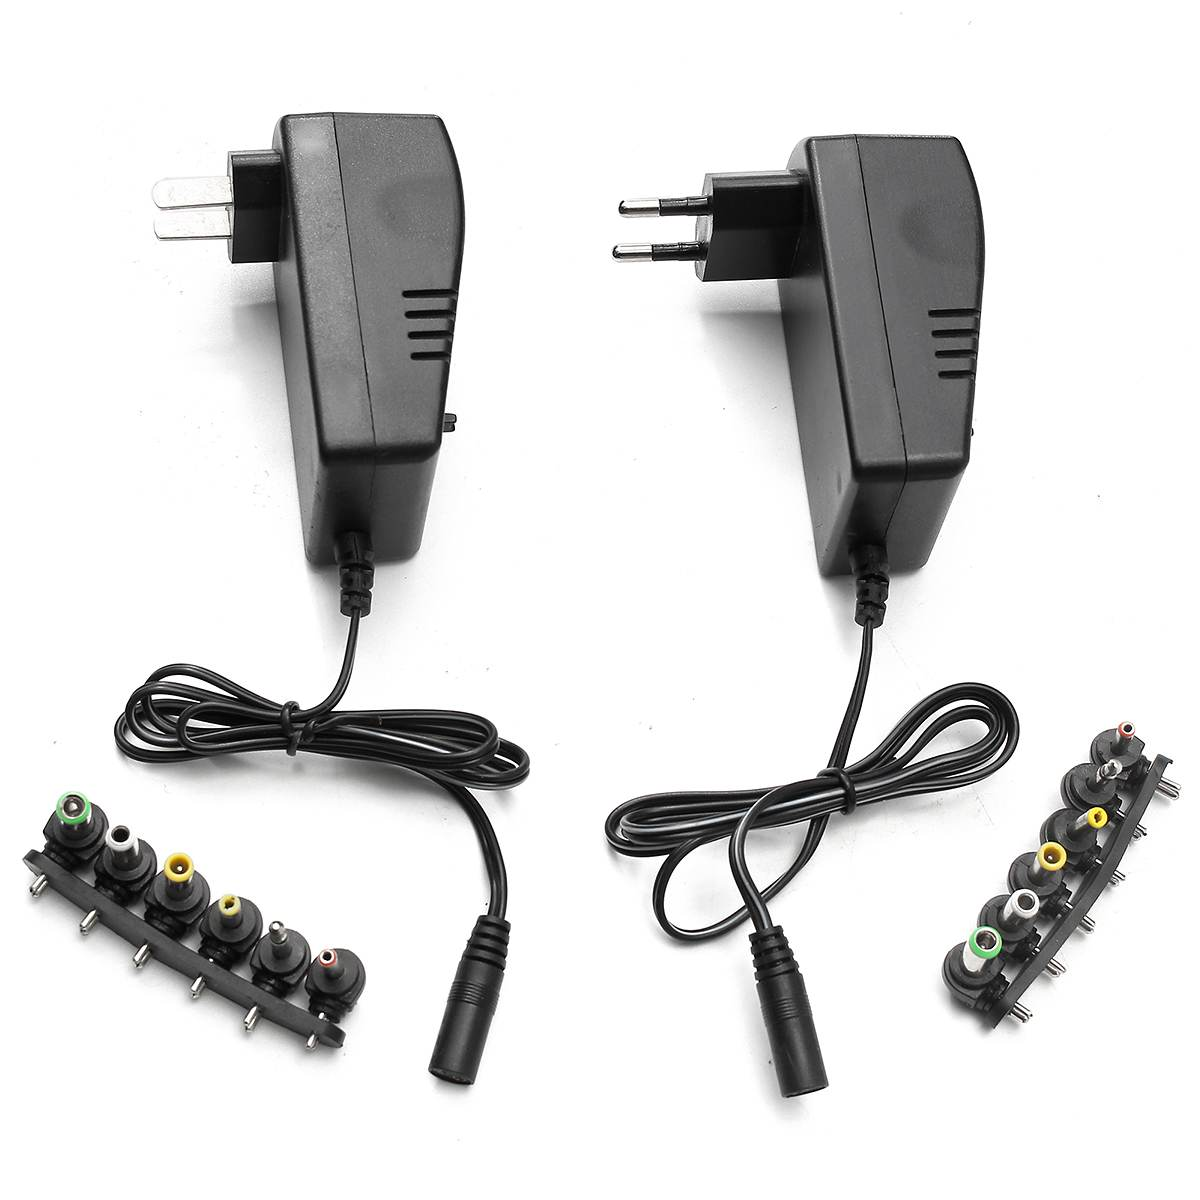 100- 240V AC 50-60Hz Multi Voltage 3v 4.5v 5v 6v <font><b>9v</b></font> 12v DC Adjustable Power <font><b>Adapter</b></font> Universal Charger Supply Converter 6 Plugs image